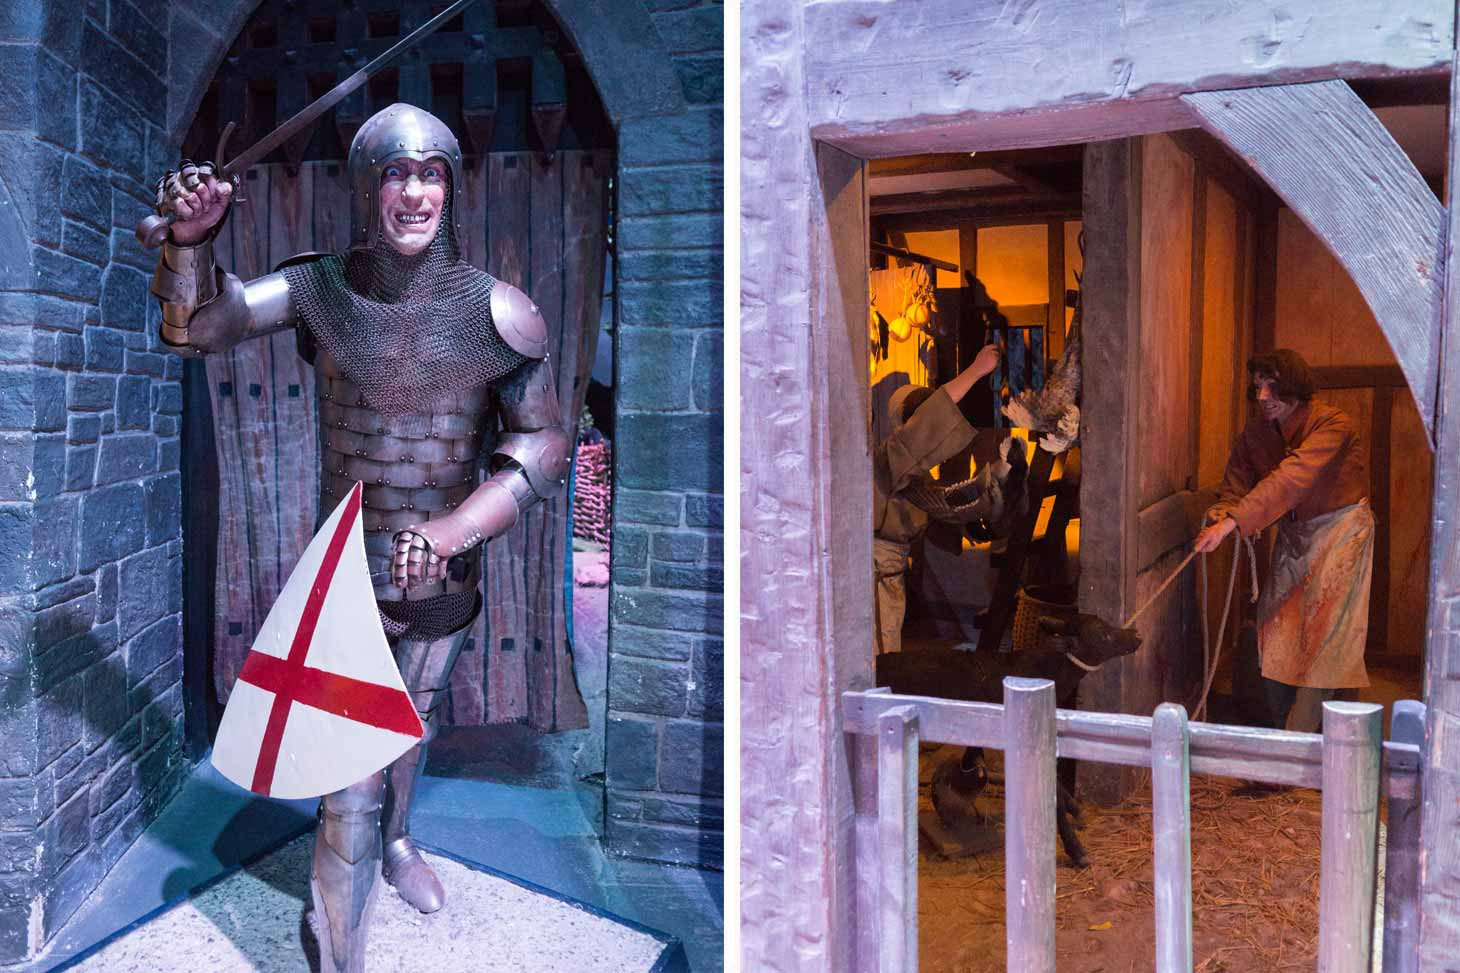 County Kerry Museum Middle Ages Village People